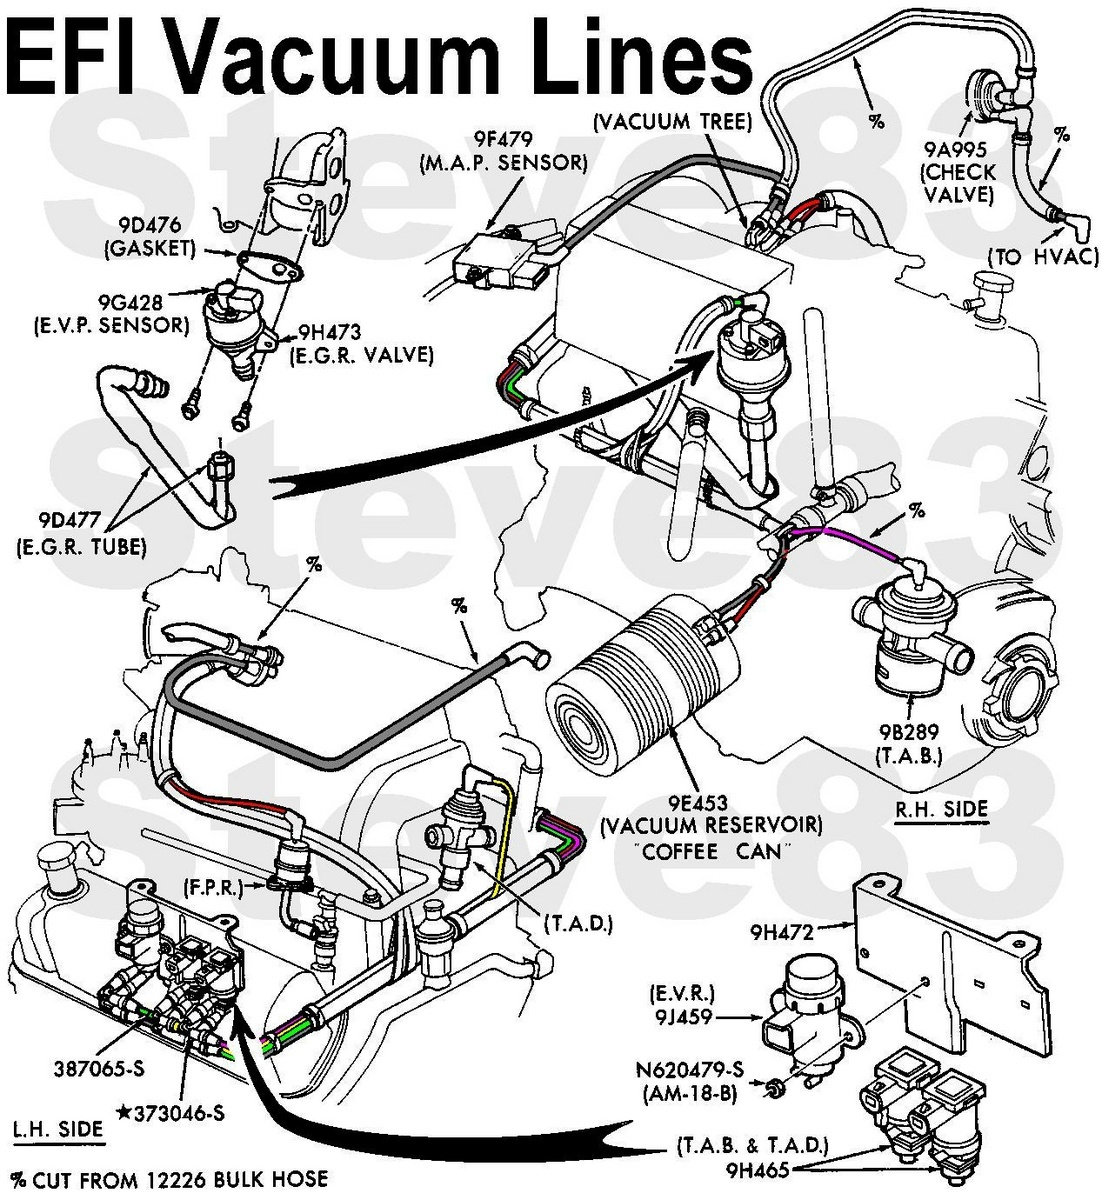 1990 mercury sable wiring diagram with Ford Explorer Vacuum Line Diagram on 66f3i Ford Taurius Ses Wagon Iac Located besides 97 Dodge 2500 Alternator Wiring Diagram in addition 21196 2 together with RepairGuideContent furthermore Showthread.